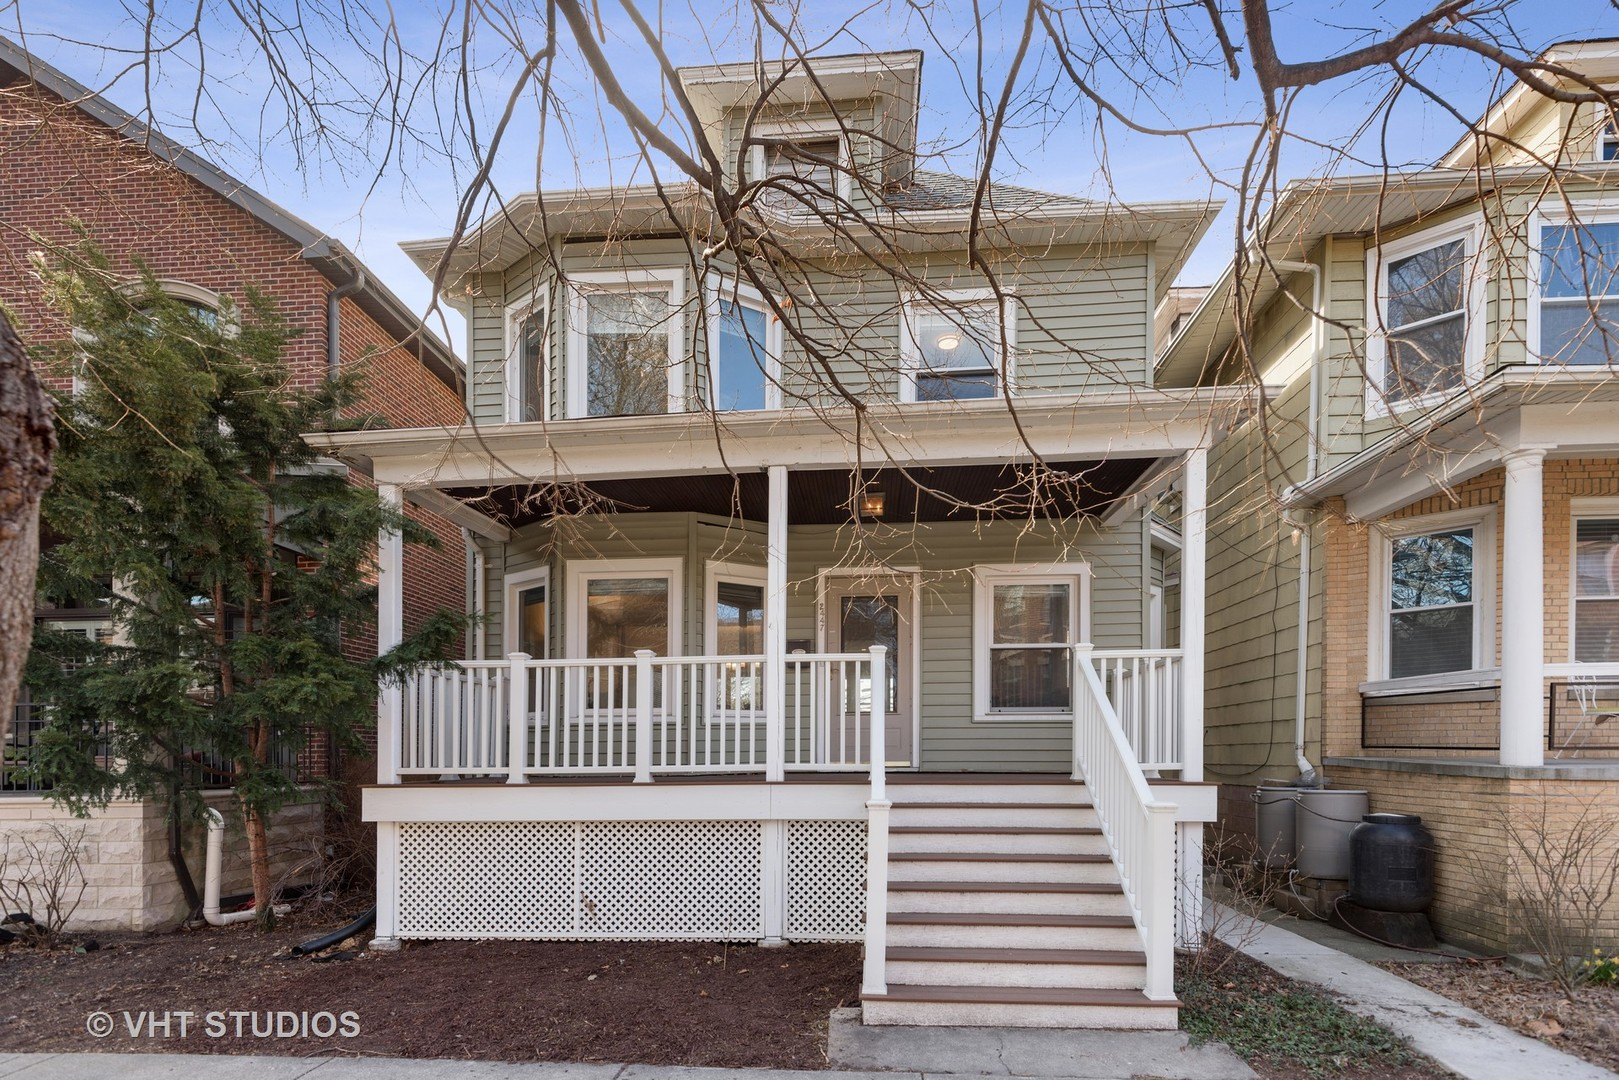 2447 Wilson ,Chicago, Illinois 60625